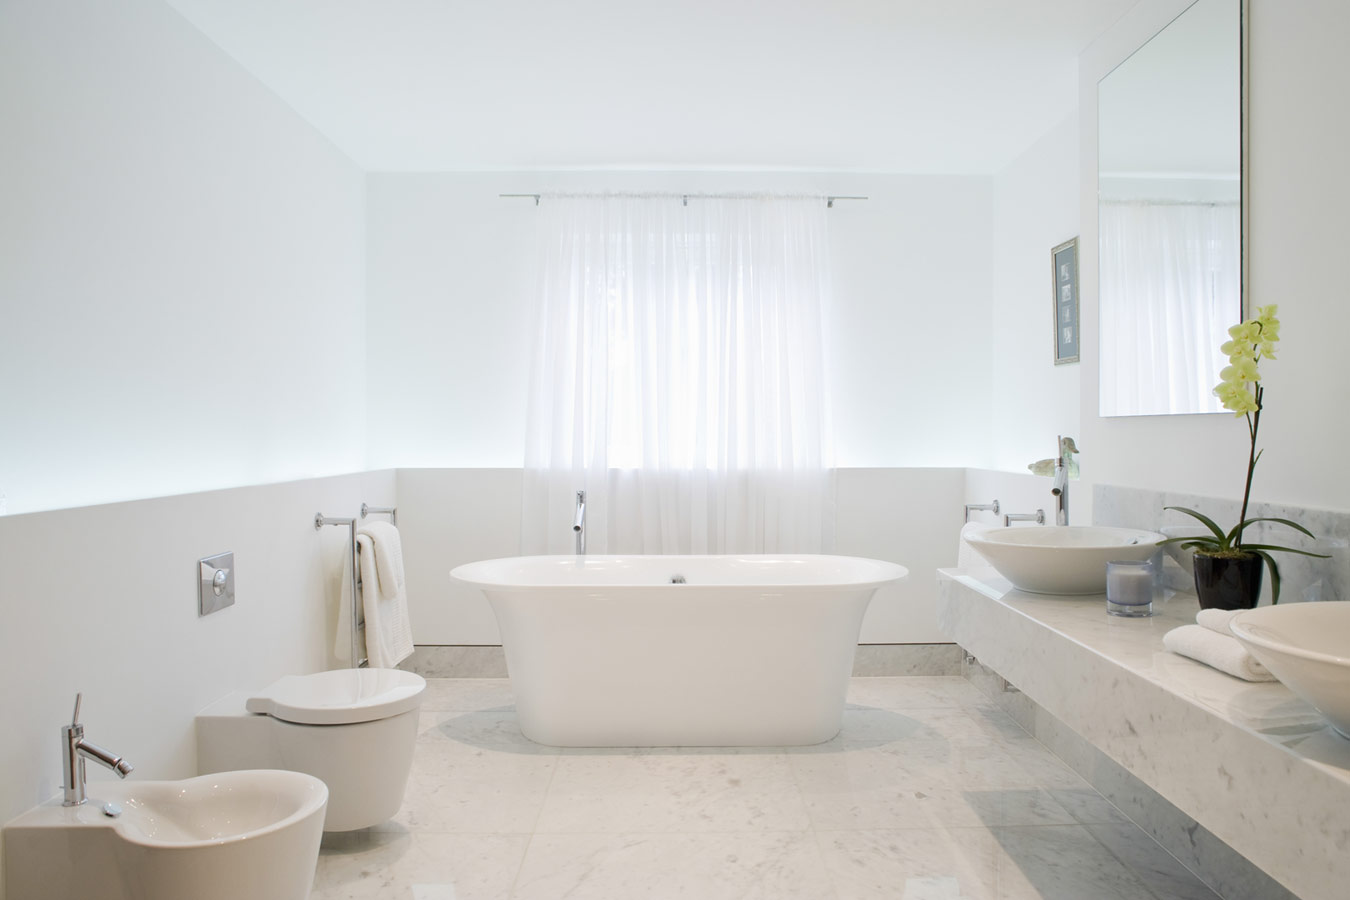 moderne badkamers inspiratie foto s en tips designs for bathroom shower designs for bathrooms with walk in tubs